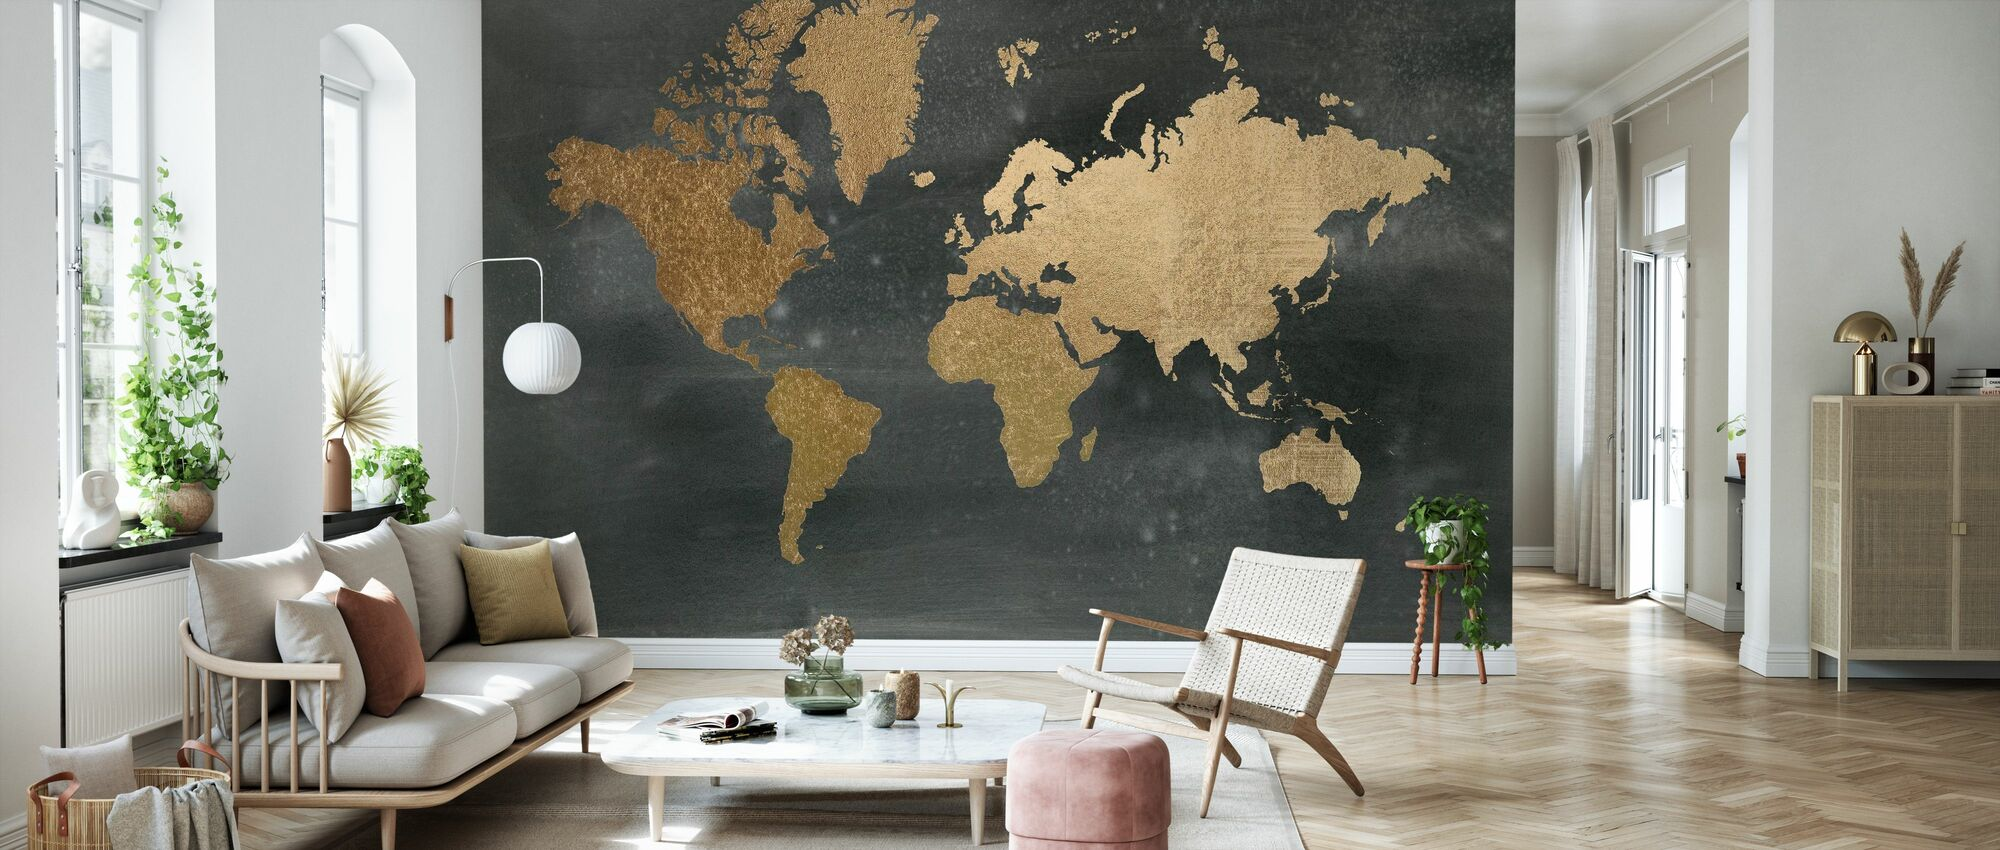 World Map on Black Wash - Wallpaper - Living Room